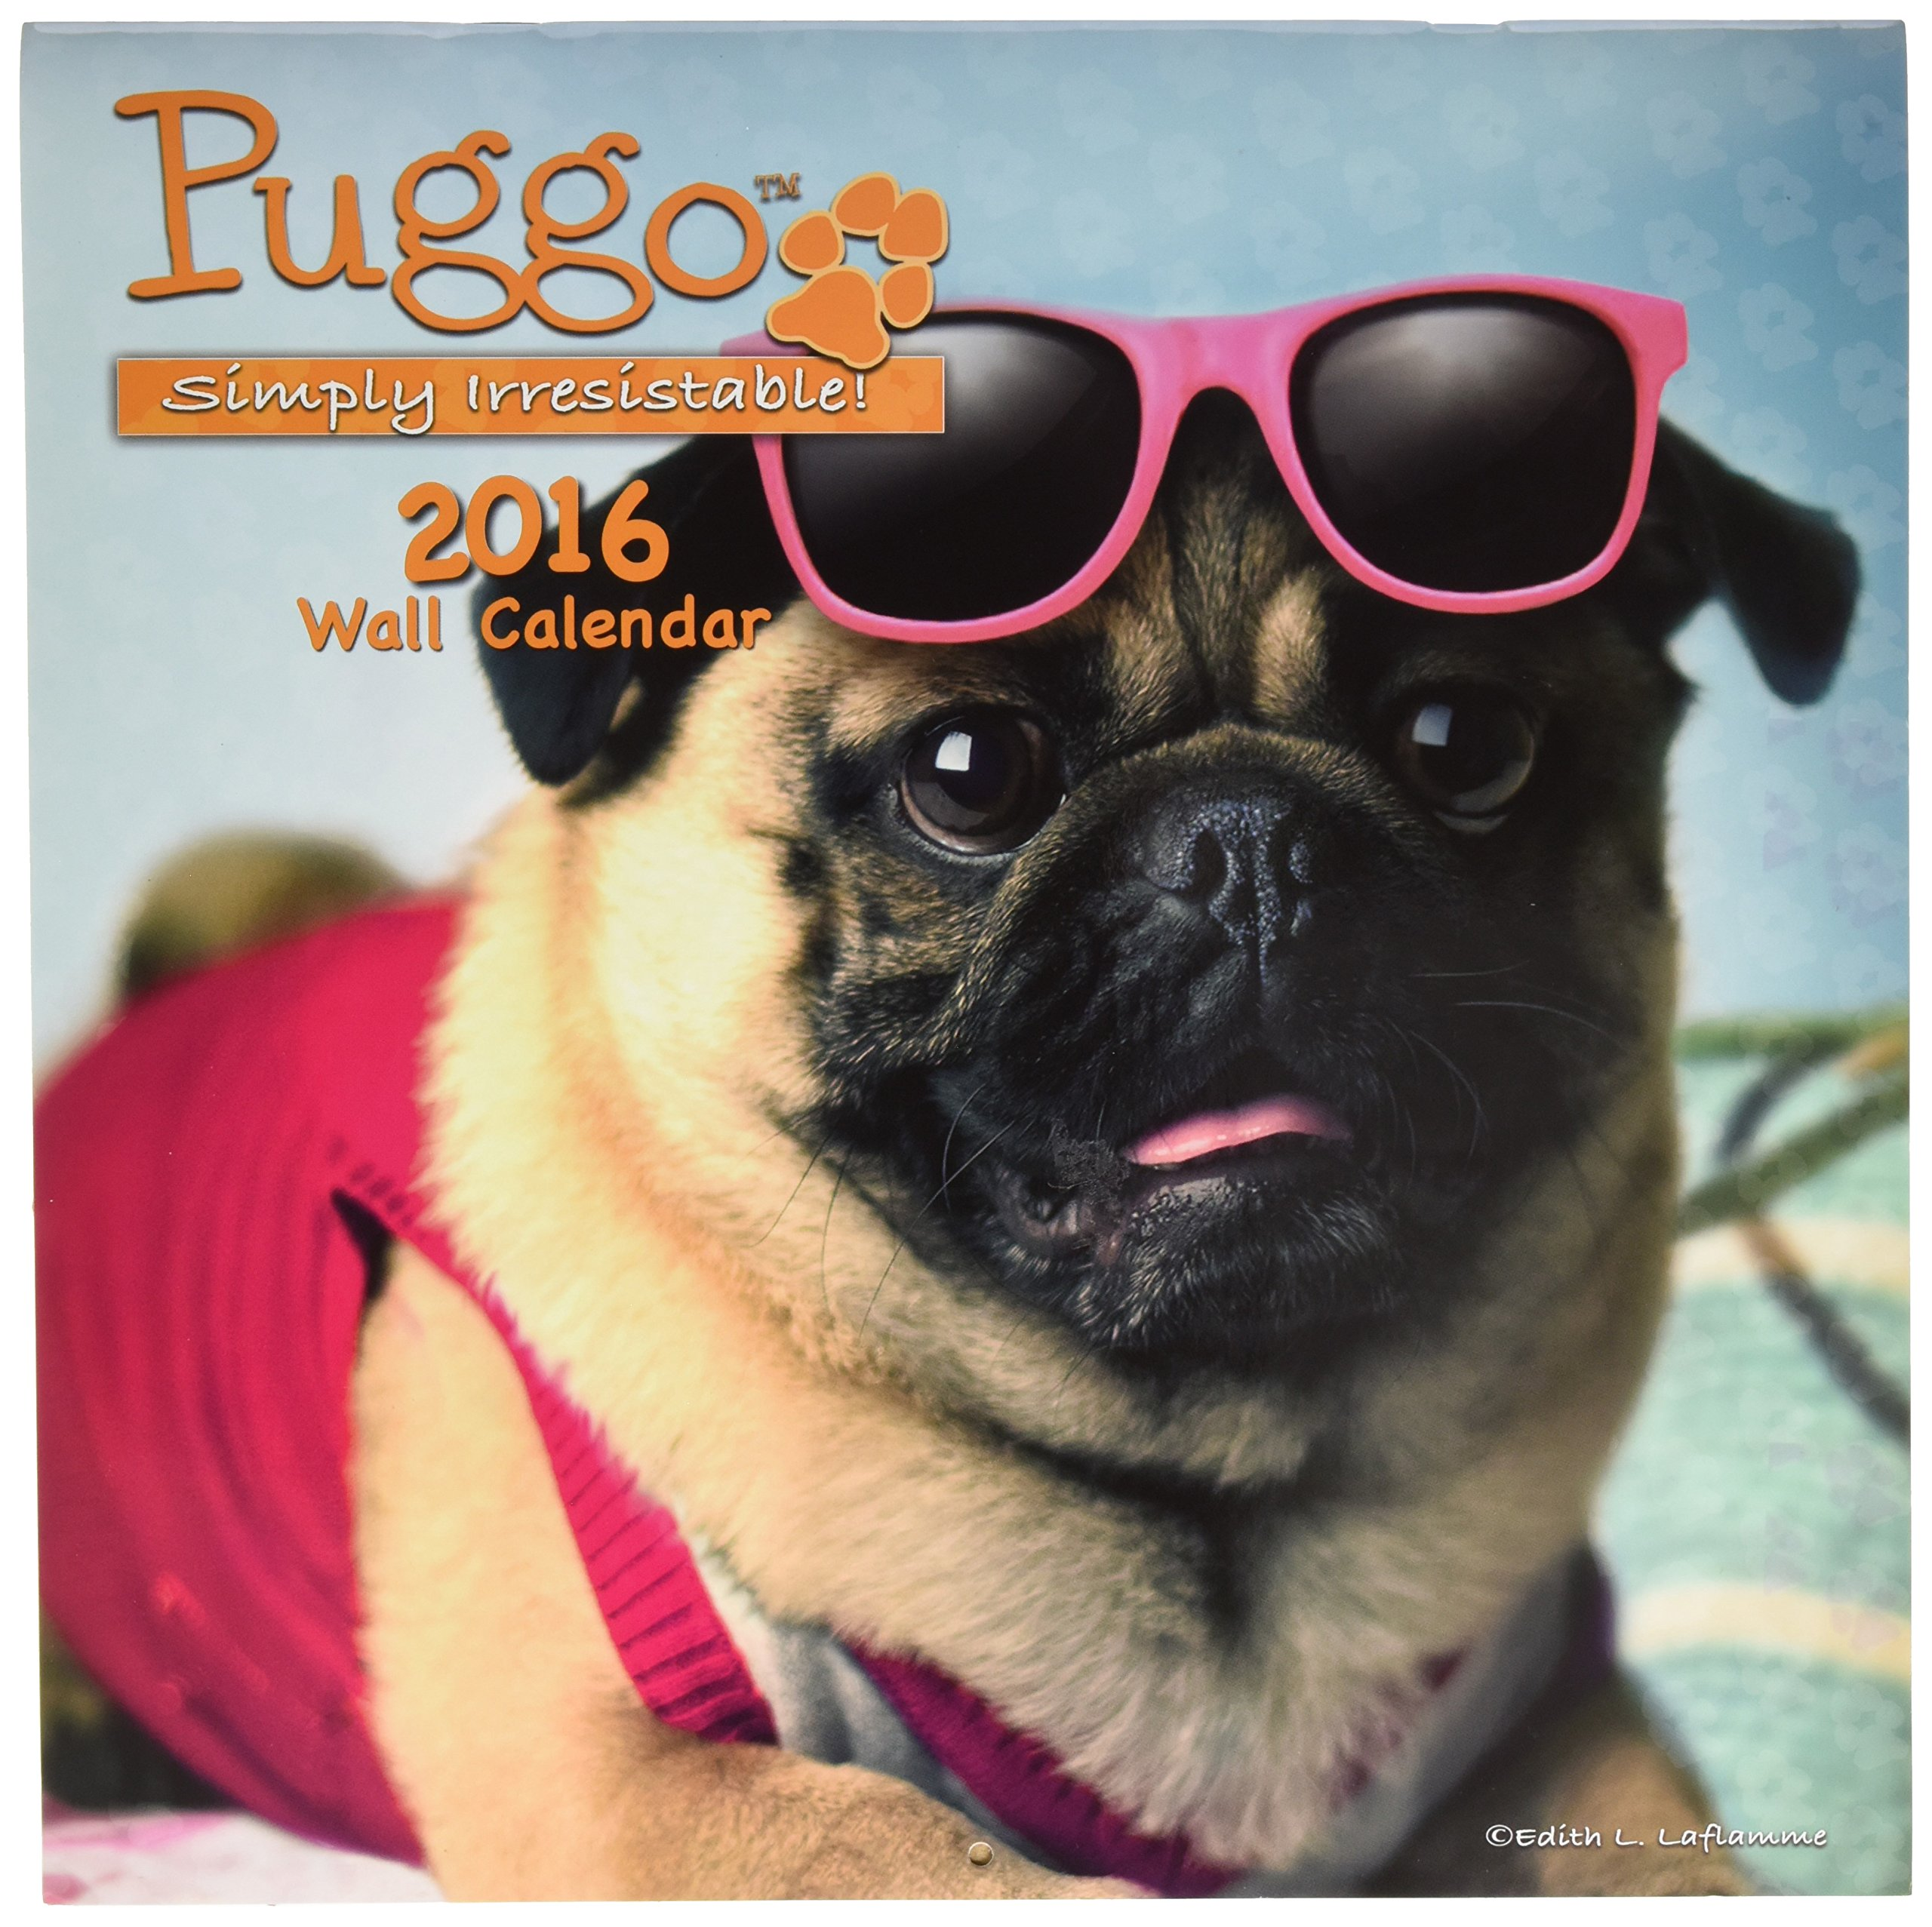 Turner Puggo 2016 Wall Calendar, 12 x 12 inches (8011977)